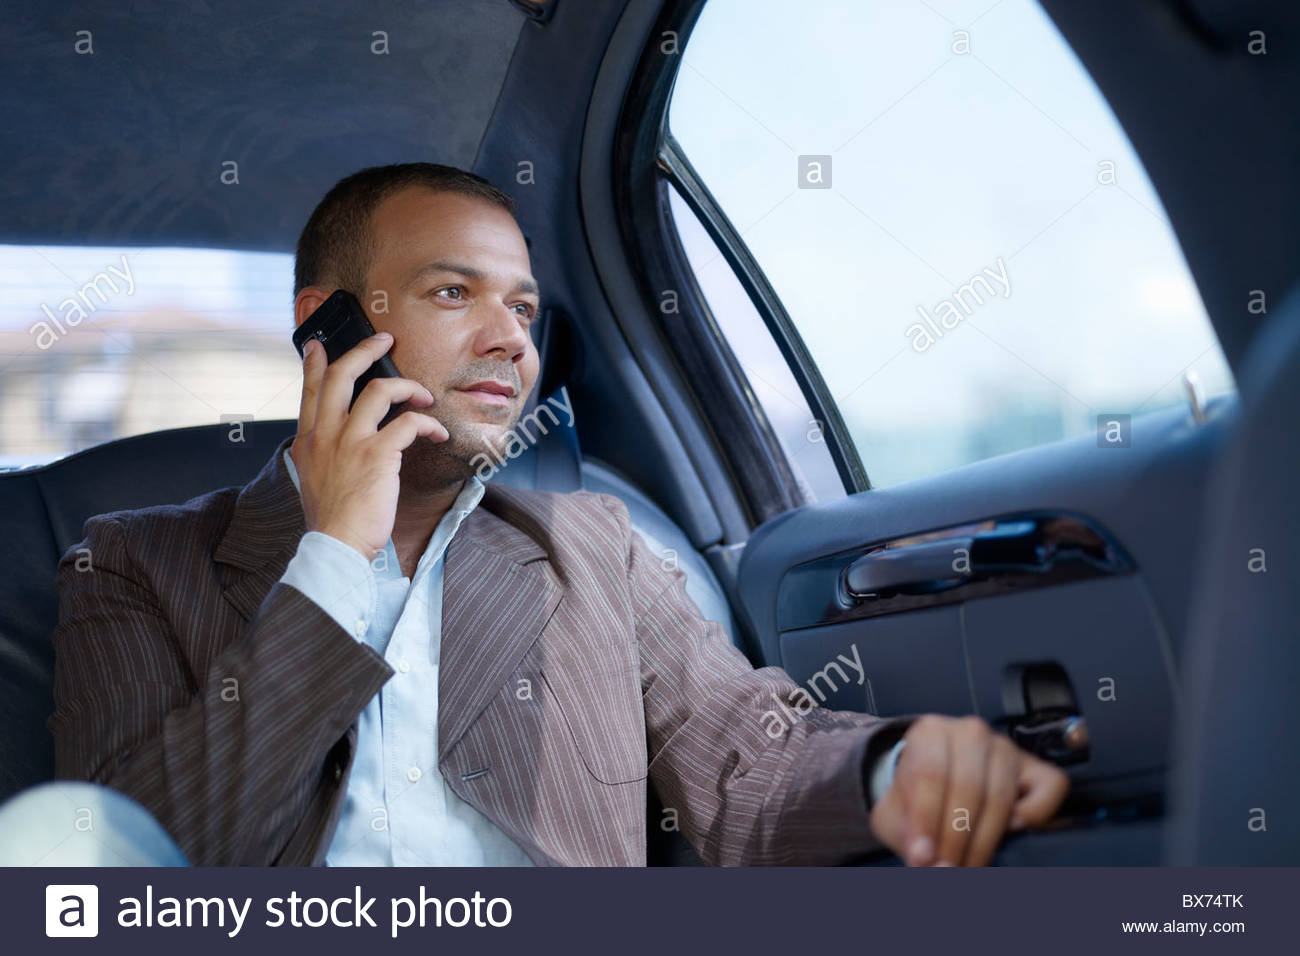 Businessman on the phone in limousine - Stock Image